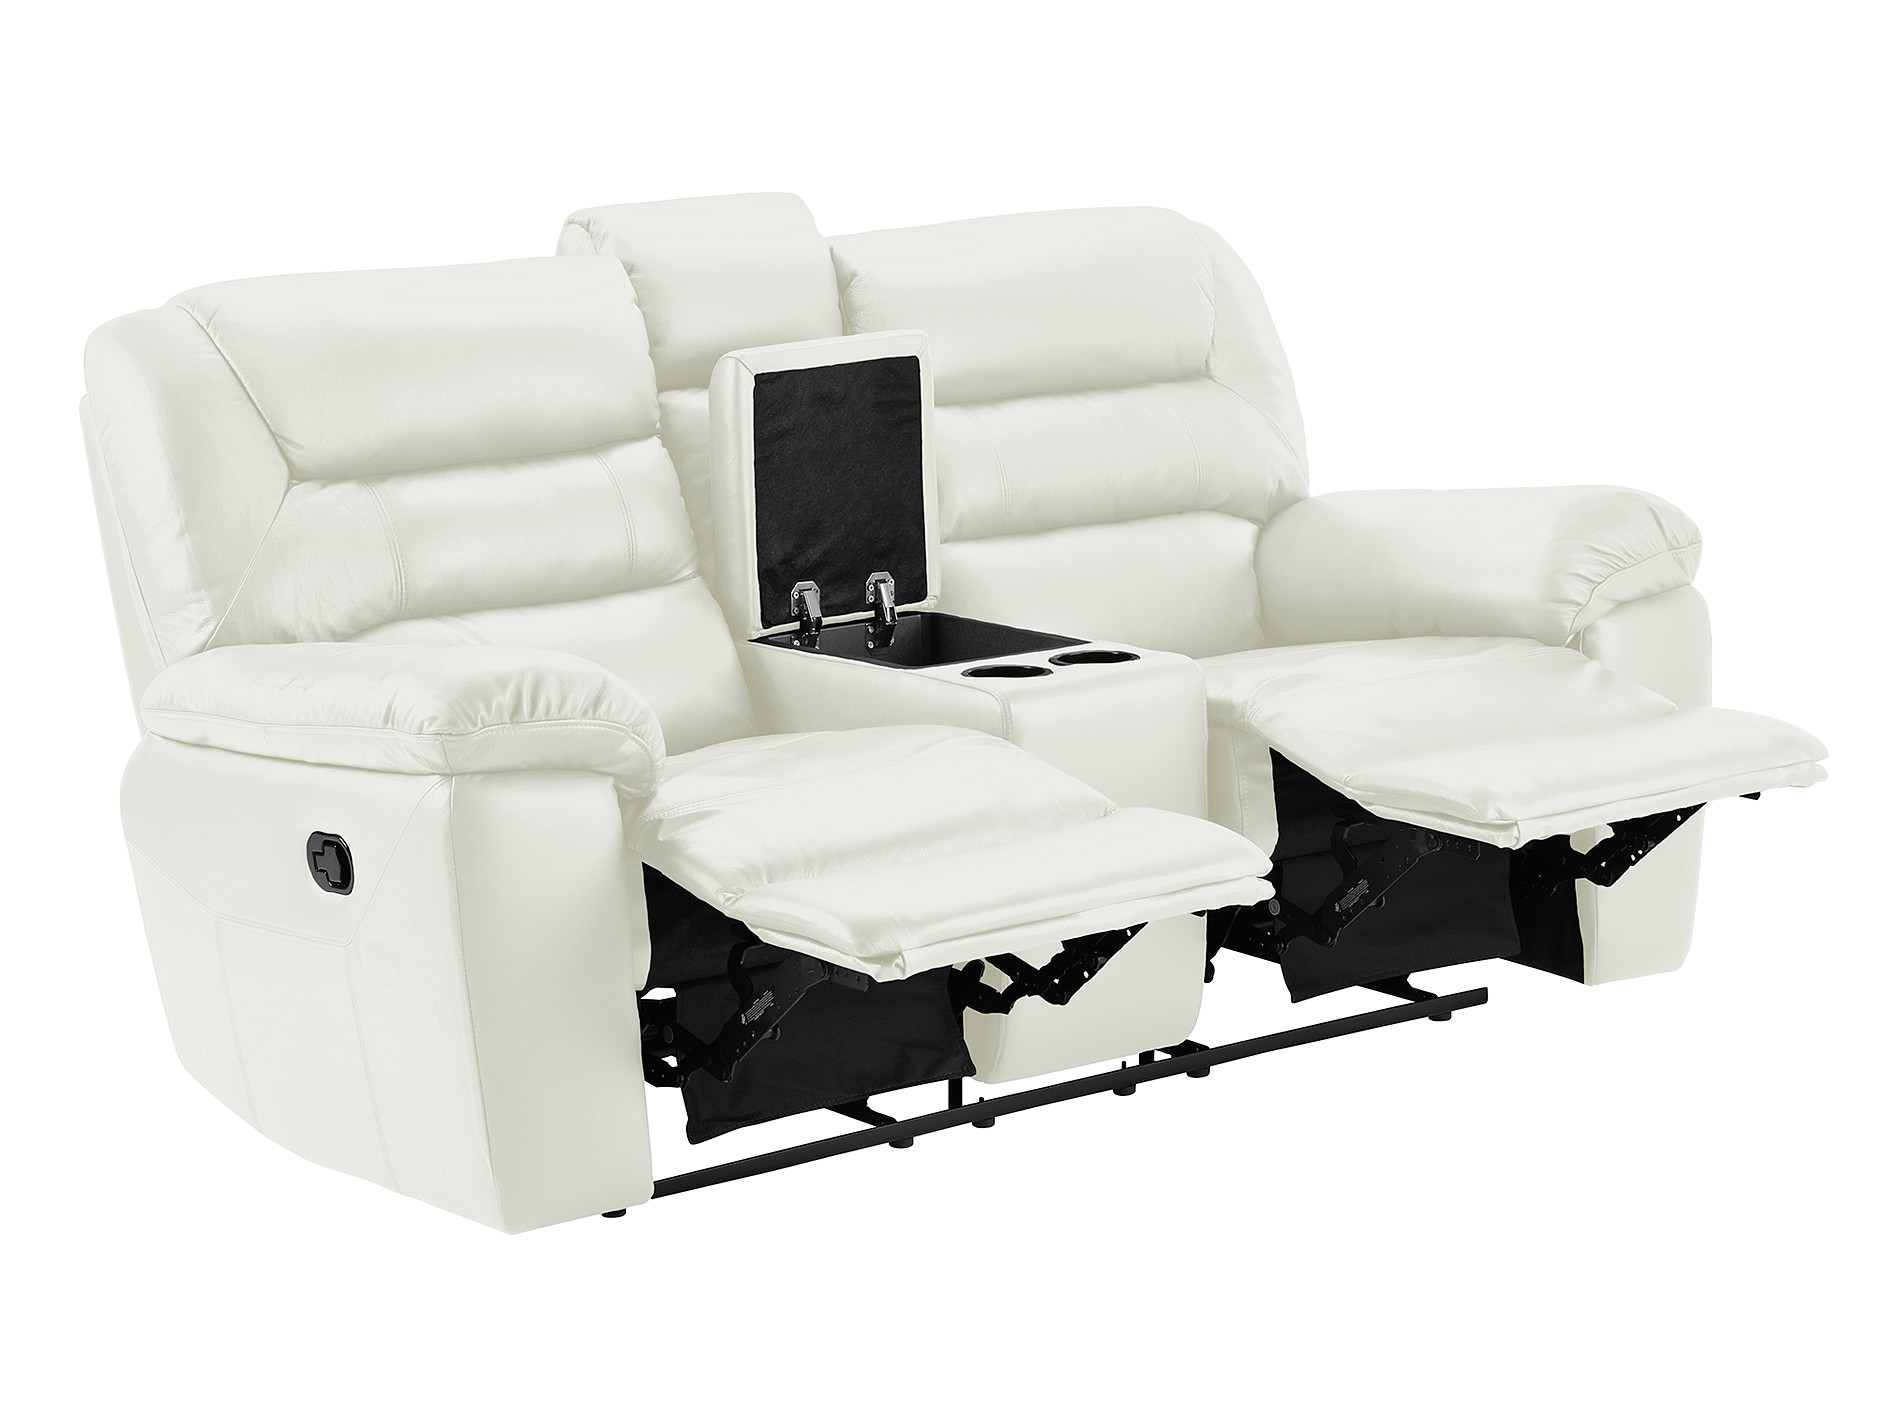 Devon small sofa with electric recliners off white leather windsor electric recliner chair Small white loveseat